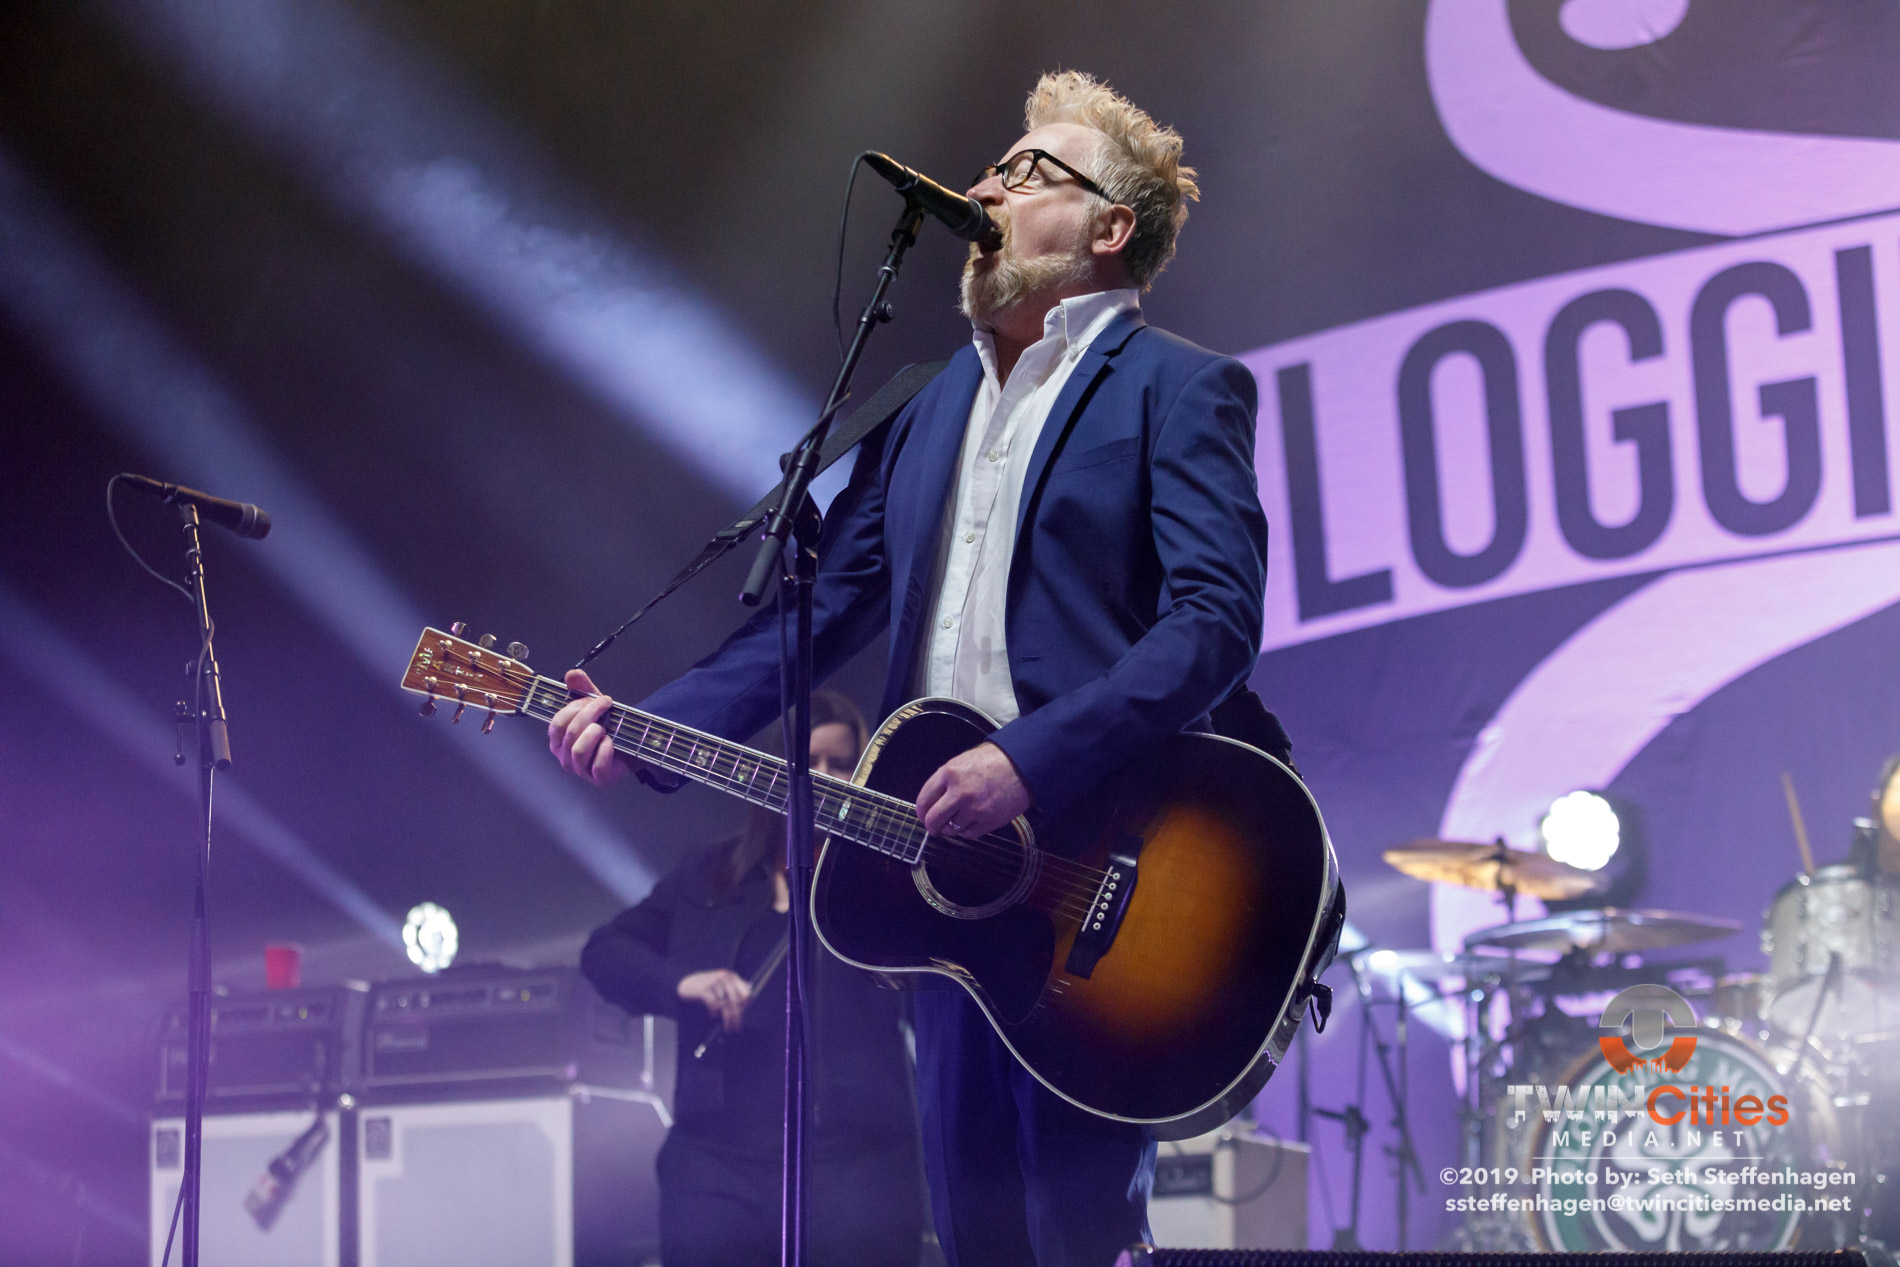 September 8, 2019 - Minneapolis, Minnesota, United States - Flogging Molly live in concert at the The Armory. Co-headlining with Social Distortion along with The Devil Makes Three and Le Butcherettes as the openers.  (Photo by Seth Steffenhagen/Steffenhagen Photography)